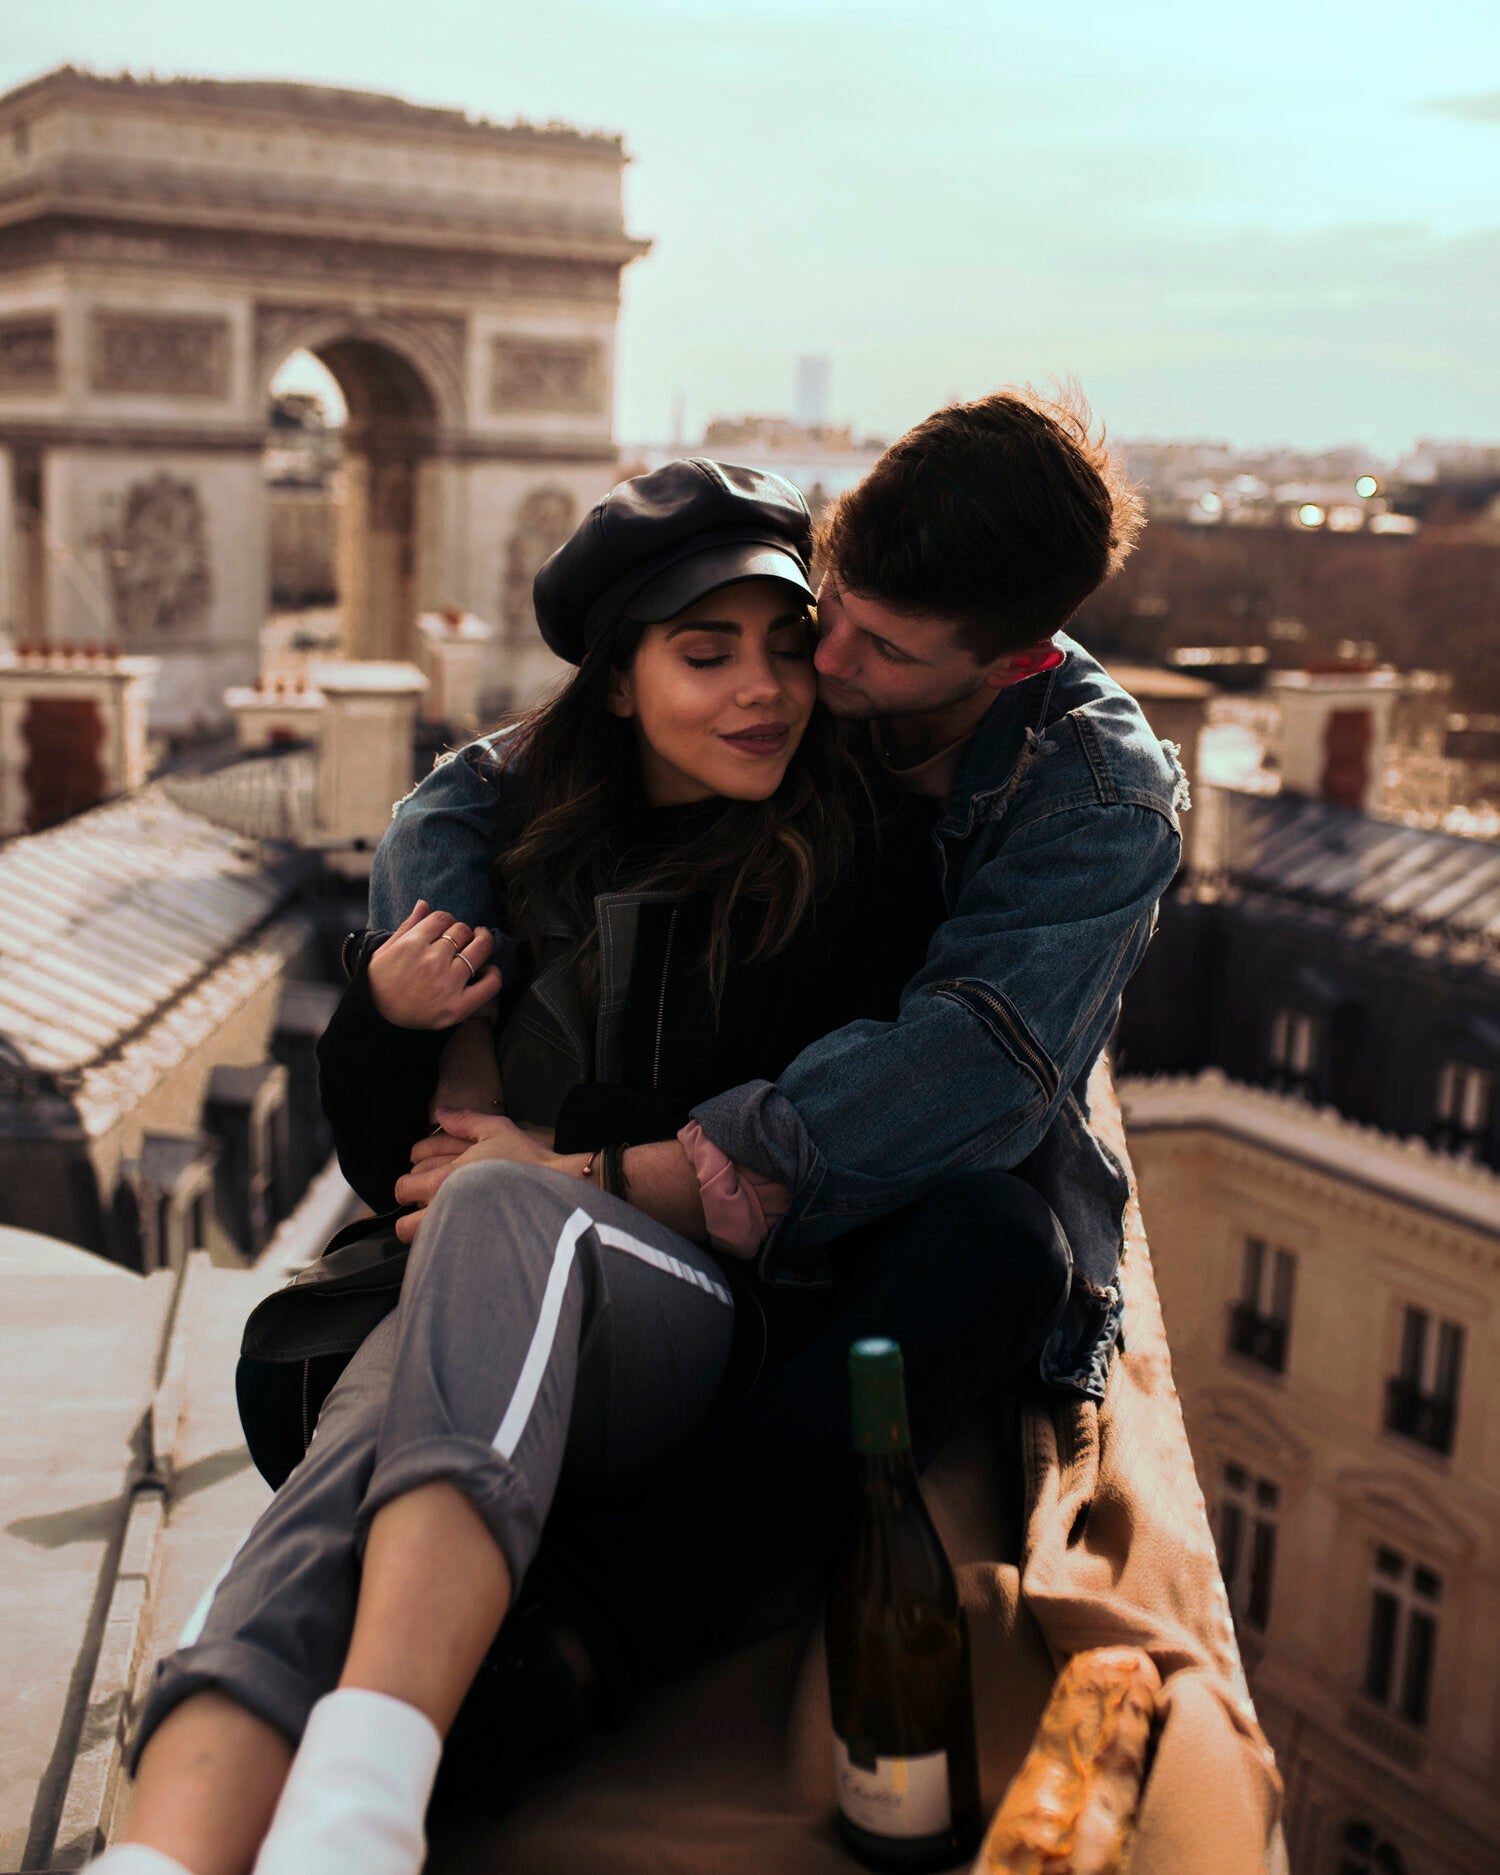 WhatTheChic and Lost LeBlanc on rooftop in Paris with Arc de Triomphe behind